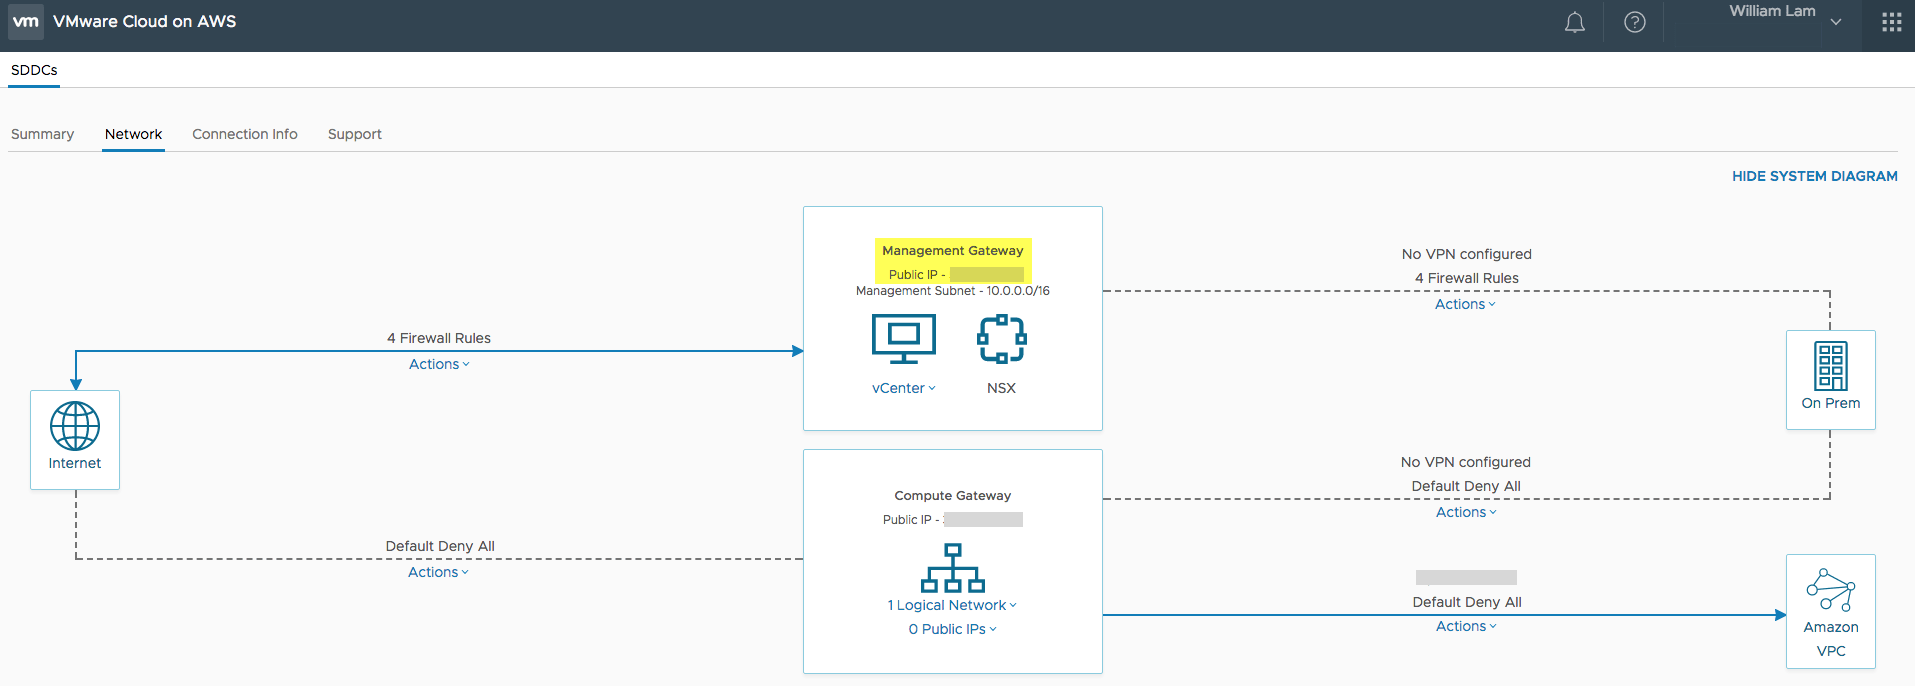 VPN Configuration to VMware Cloud on AWS using pfSense